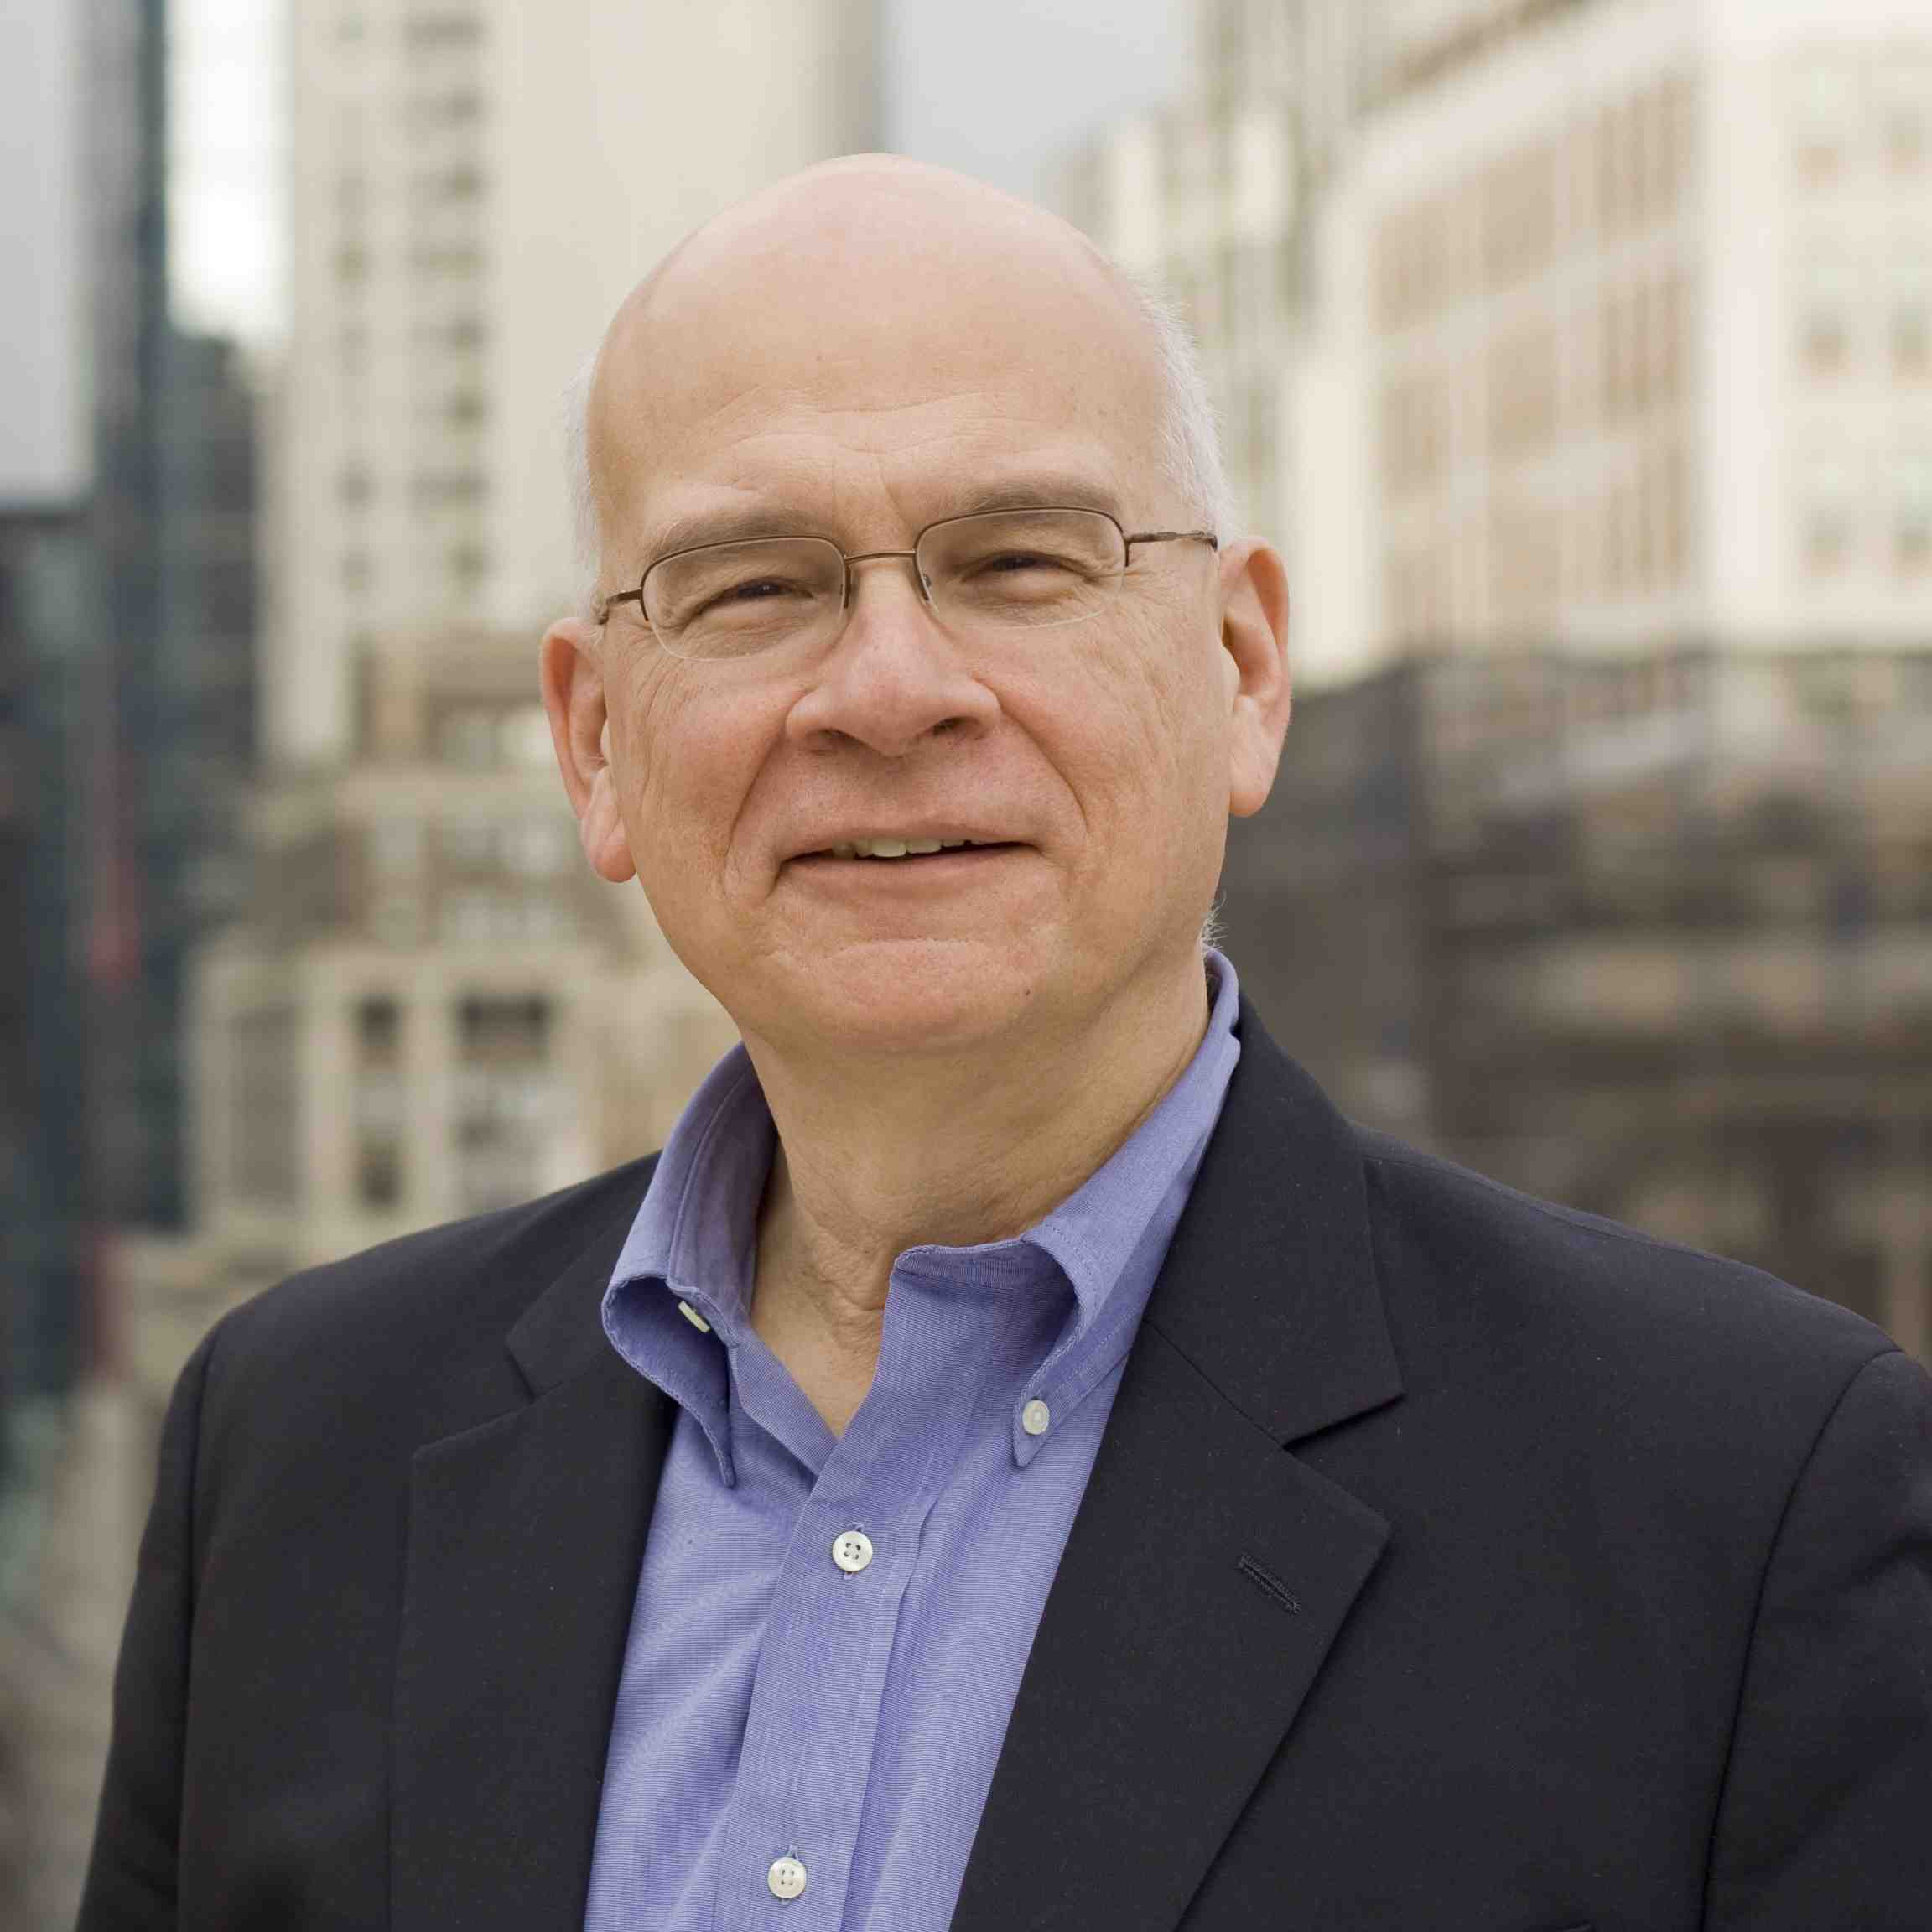 Tim Keller,  Chairman and Co-Founder of City To City